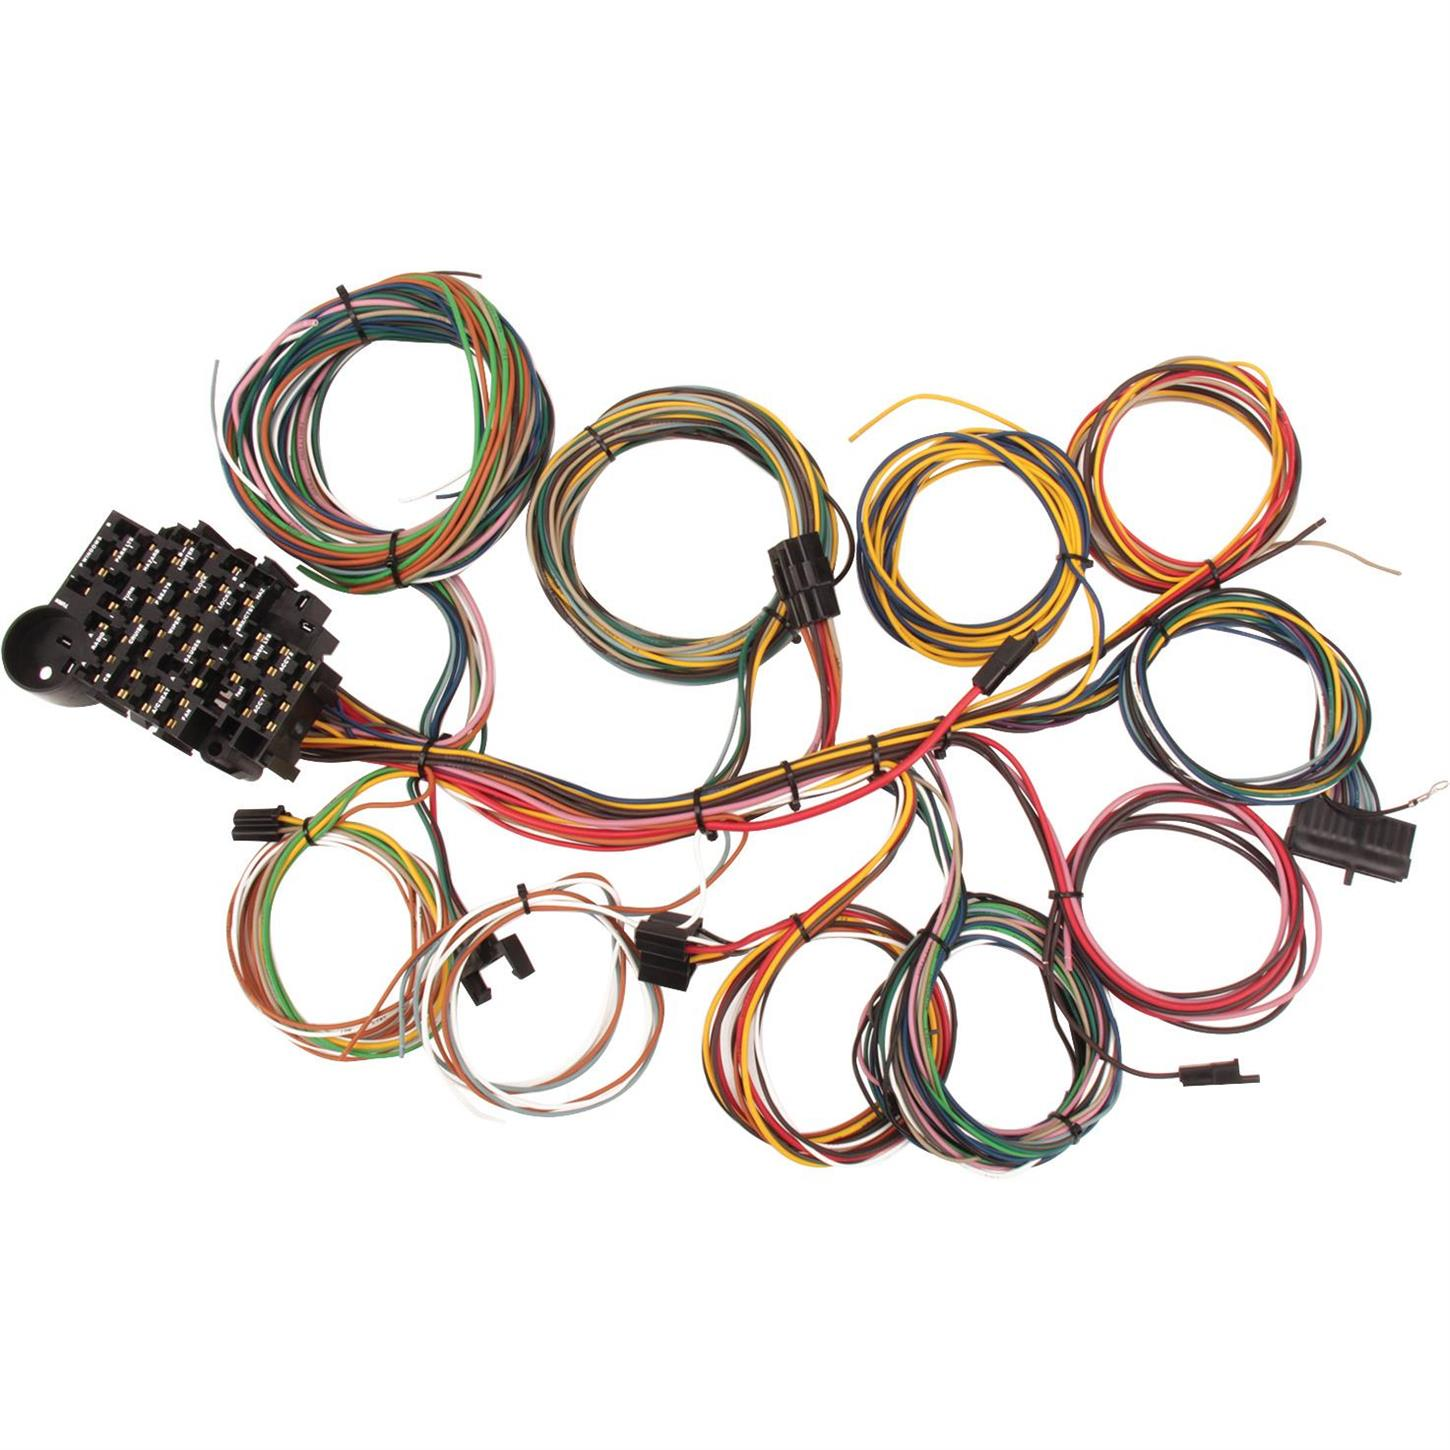 91064022_L1450_4a5a9e43 cdd2 4b2c 9c68 457f296054bd selecting a wiring harness for your street rod  at sewacar.co